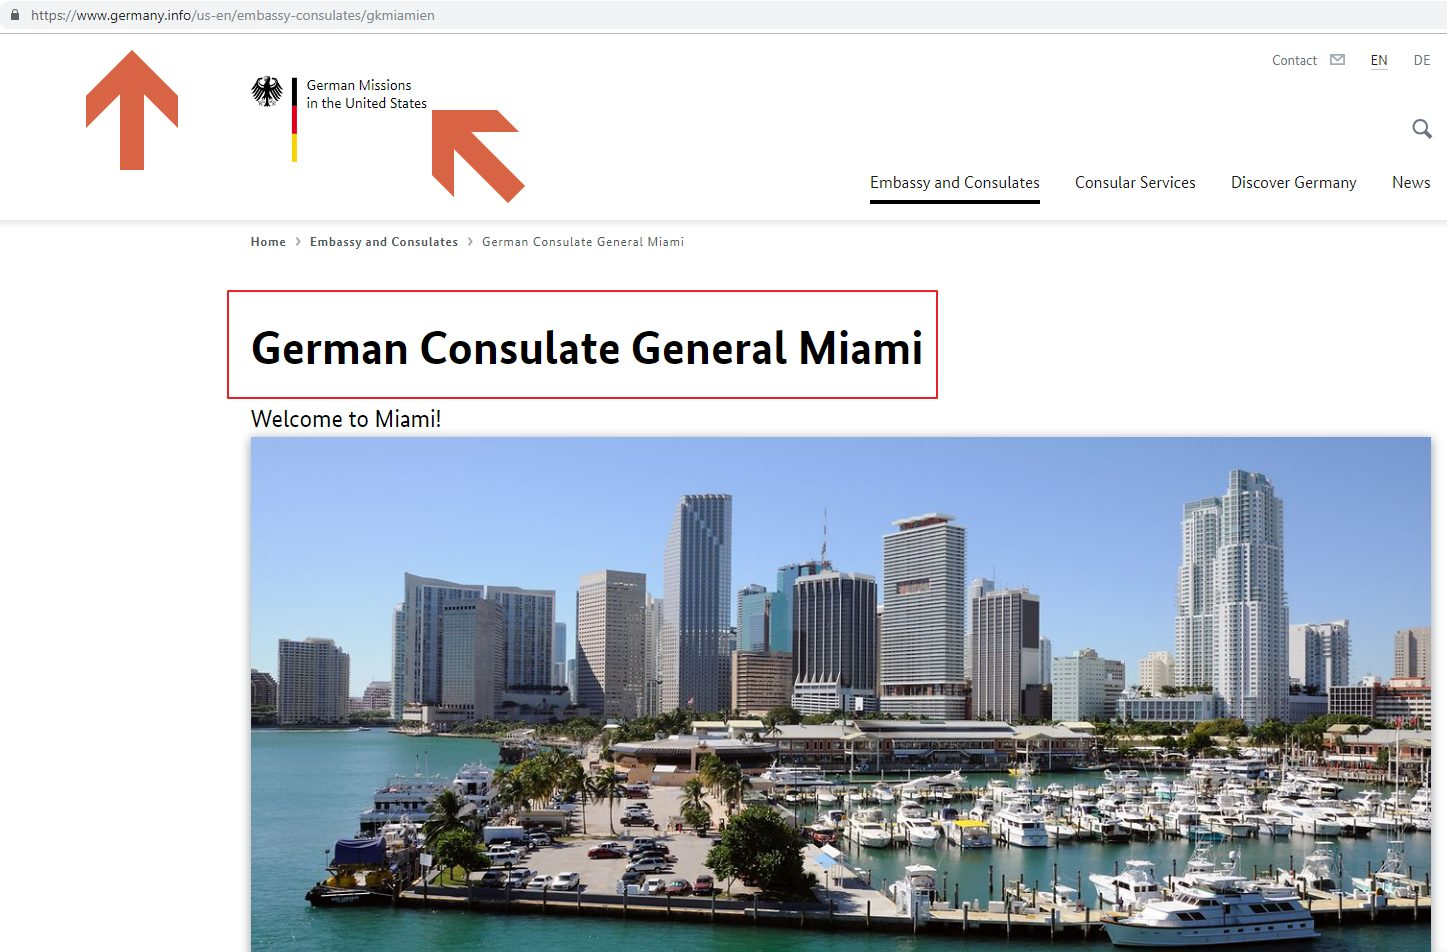 Germany Consulate General Miami website